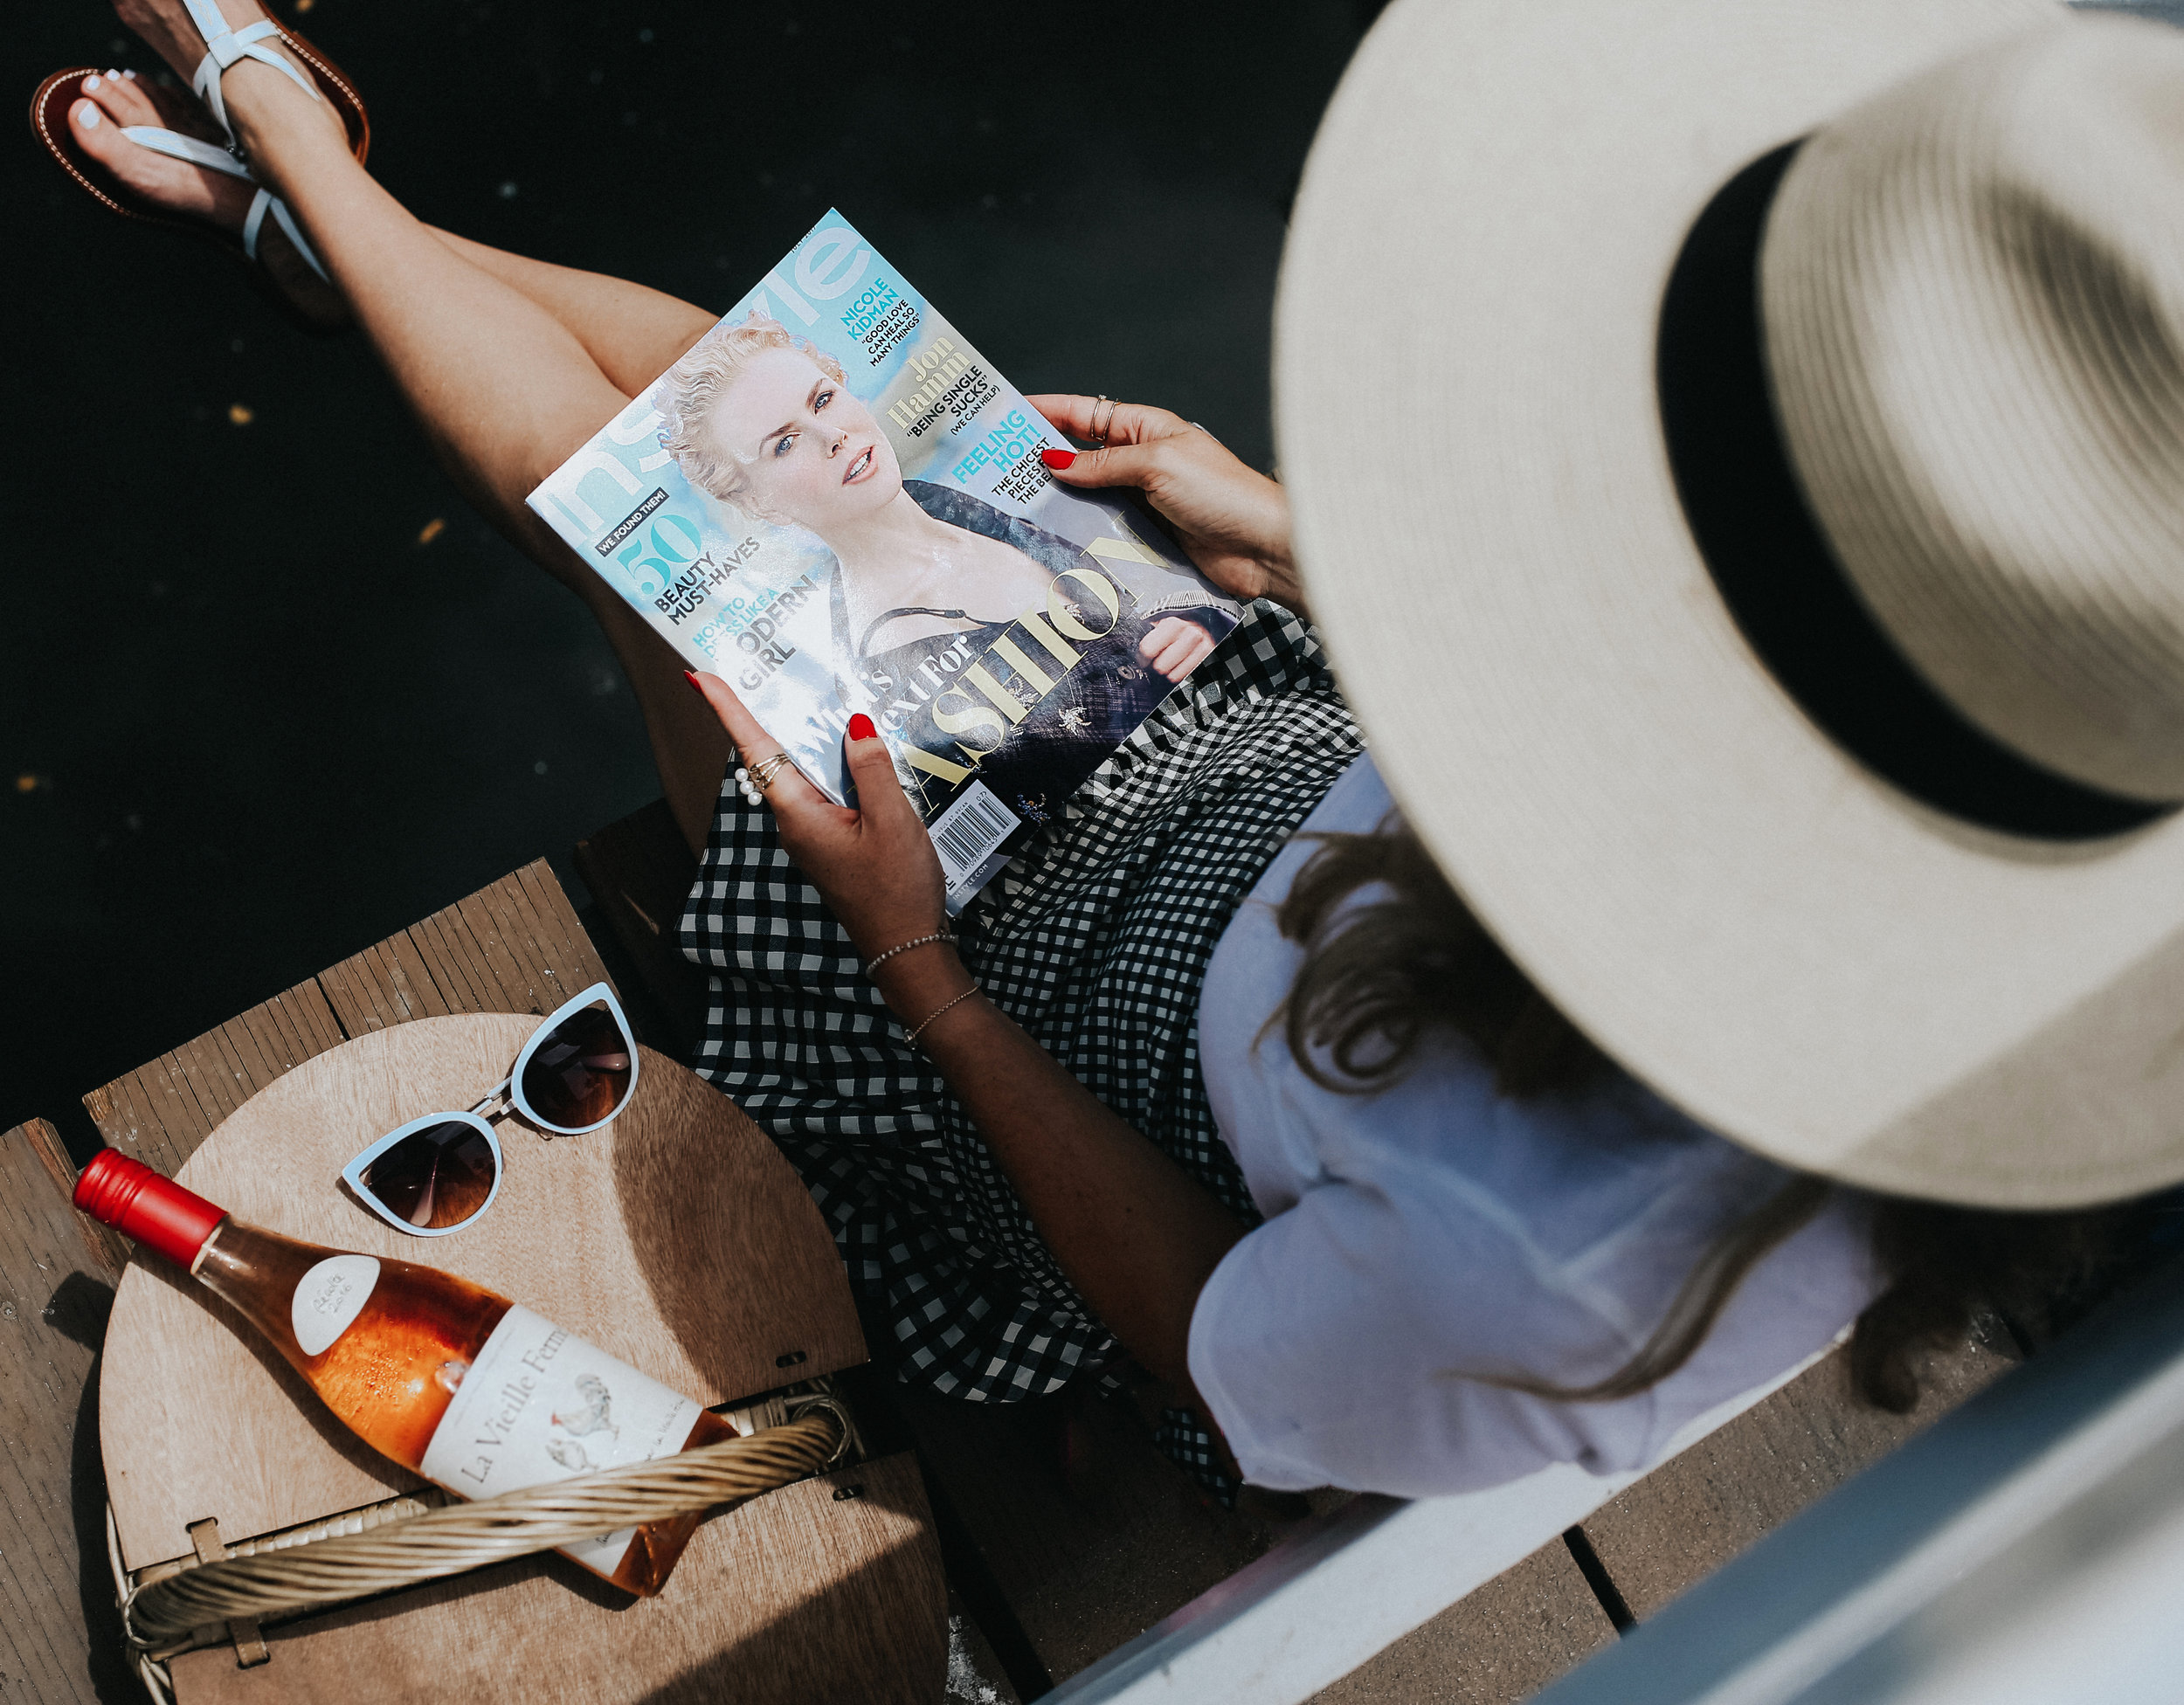 Relaxing on the canals with a picnic and a magazine is a great way to spend any summer day.